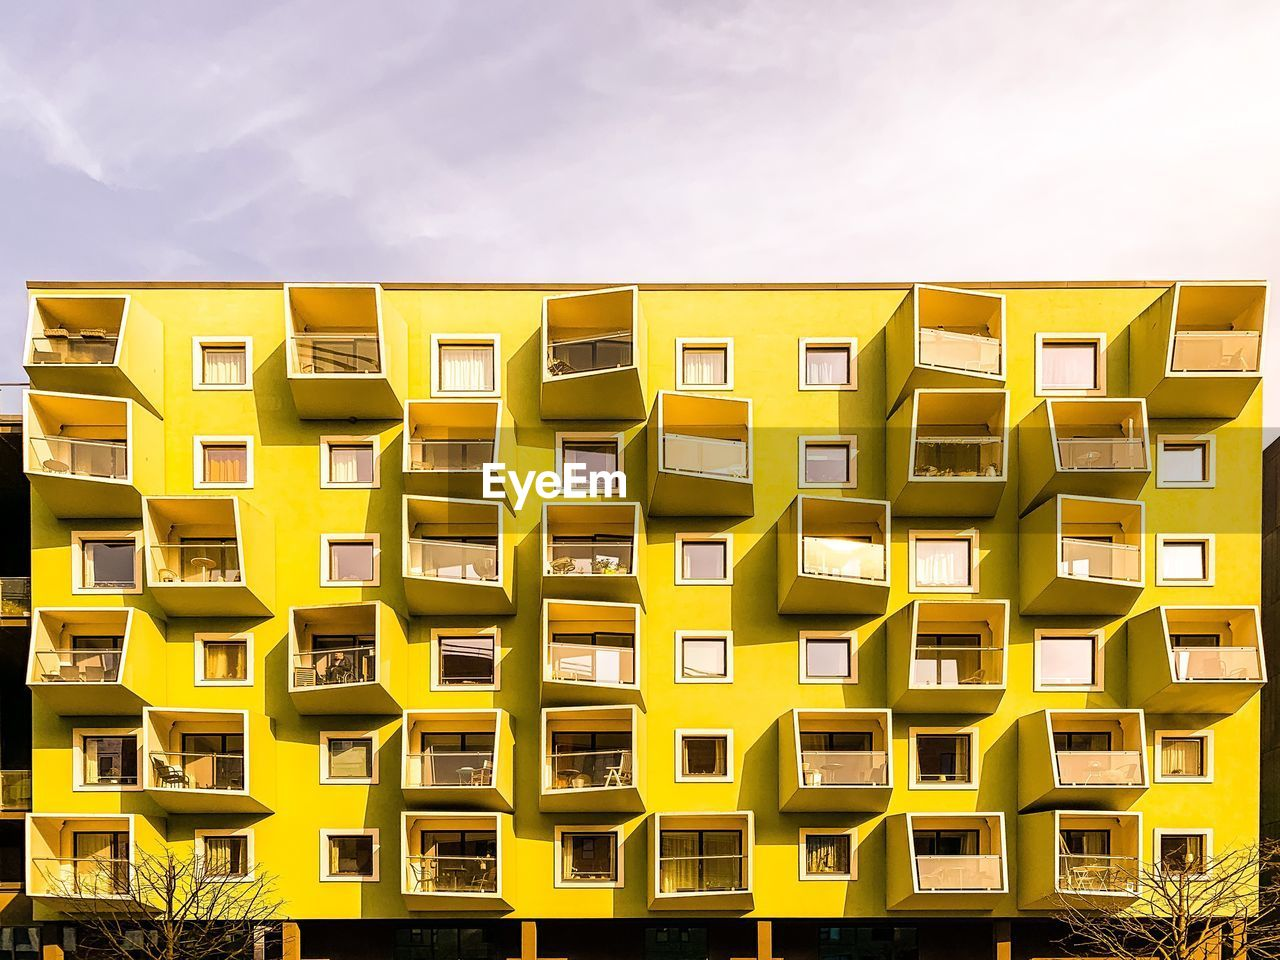 built structure, sky, building exterior, yellow, architecture, no people, residential district, building, city, nature, day, repetition, modern, outdoors, cloud - sky, pattern, balcony, low angle view, side by side, window, apartment, place